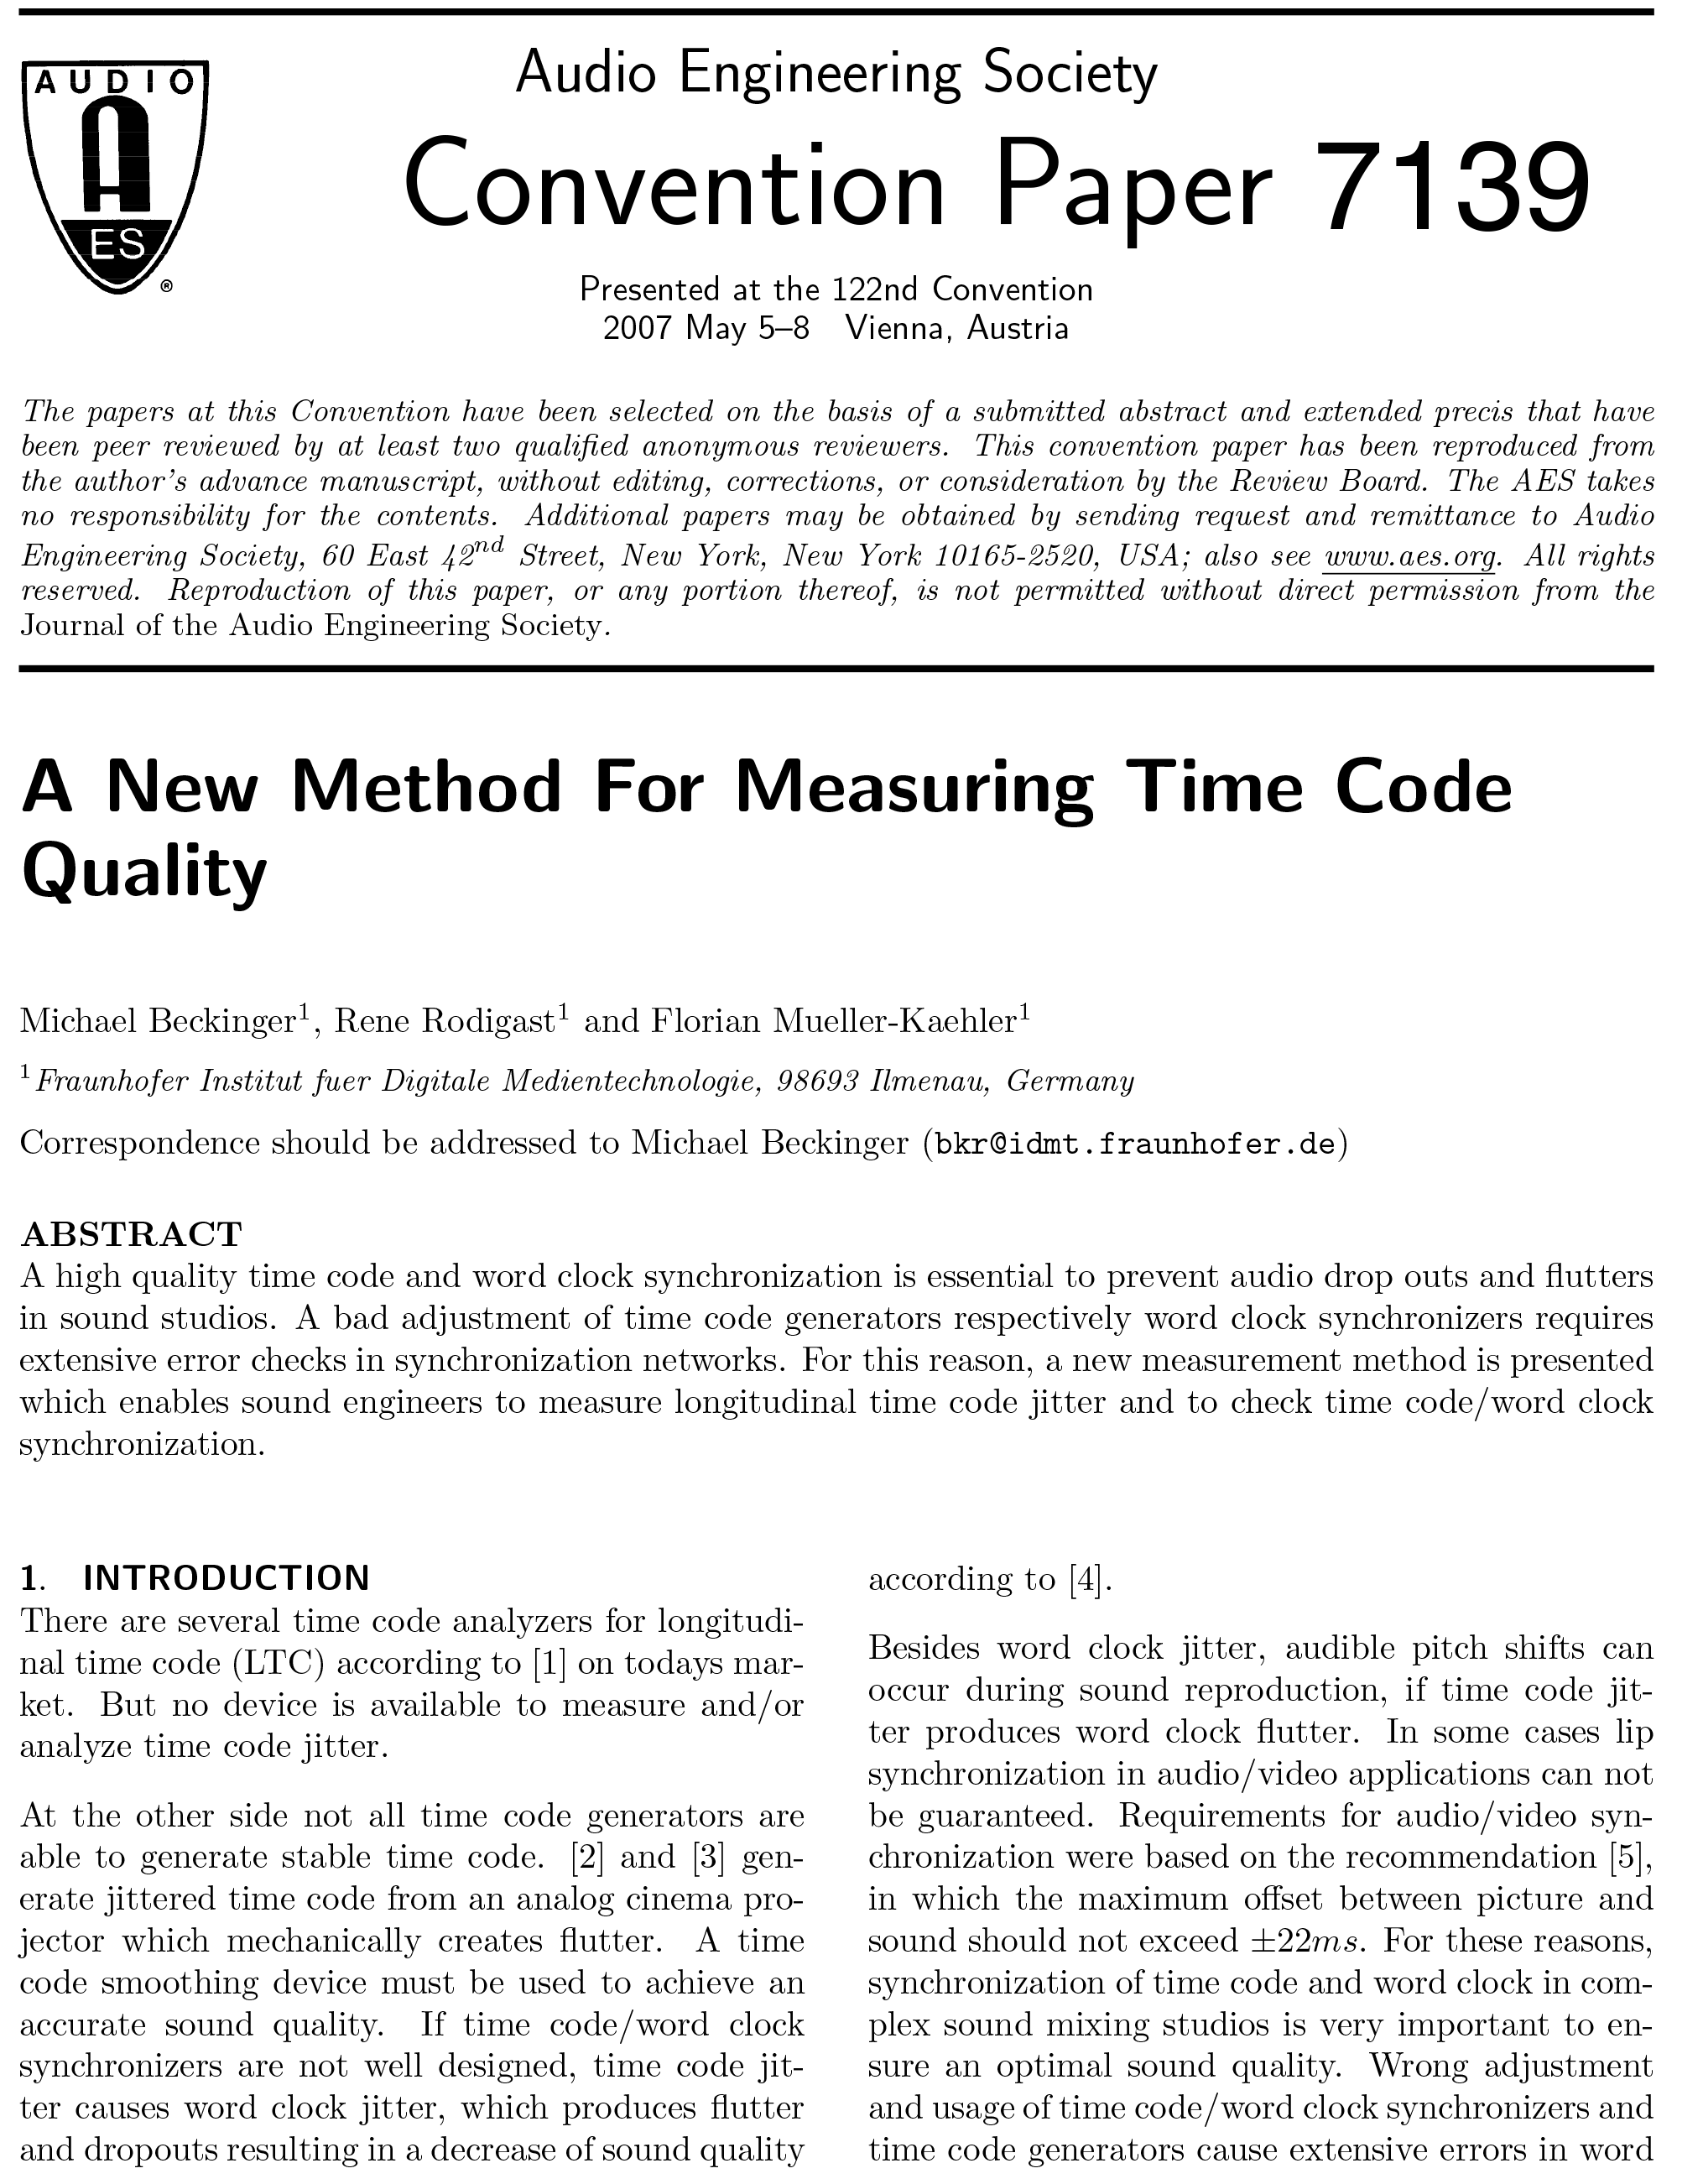 AES E-Library » A New Method for Measuring Time Code Quality